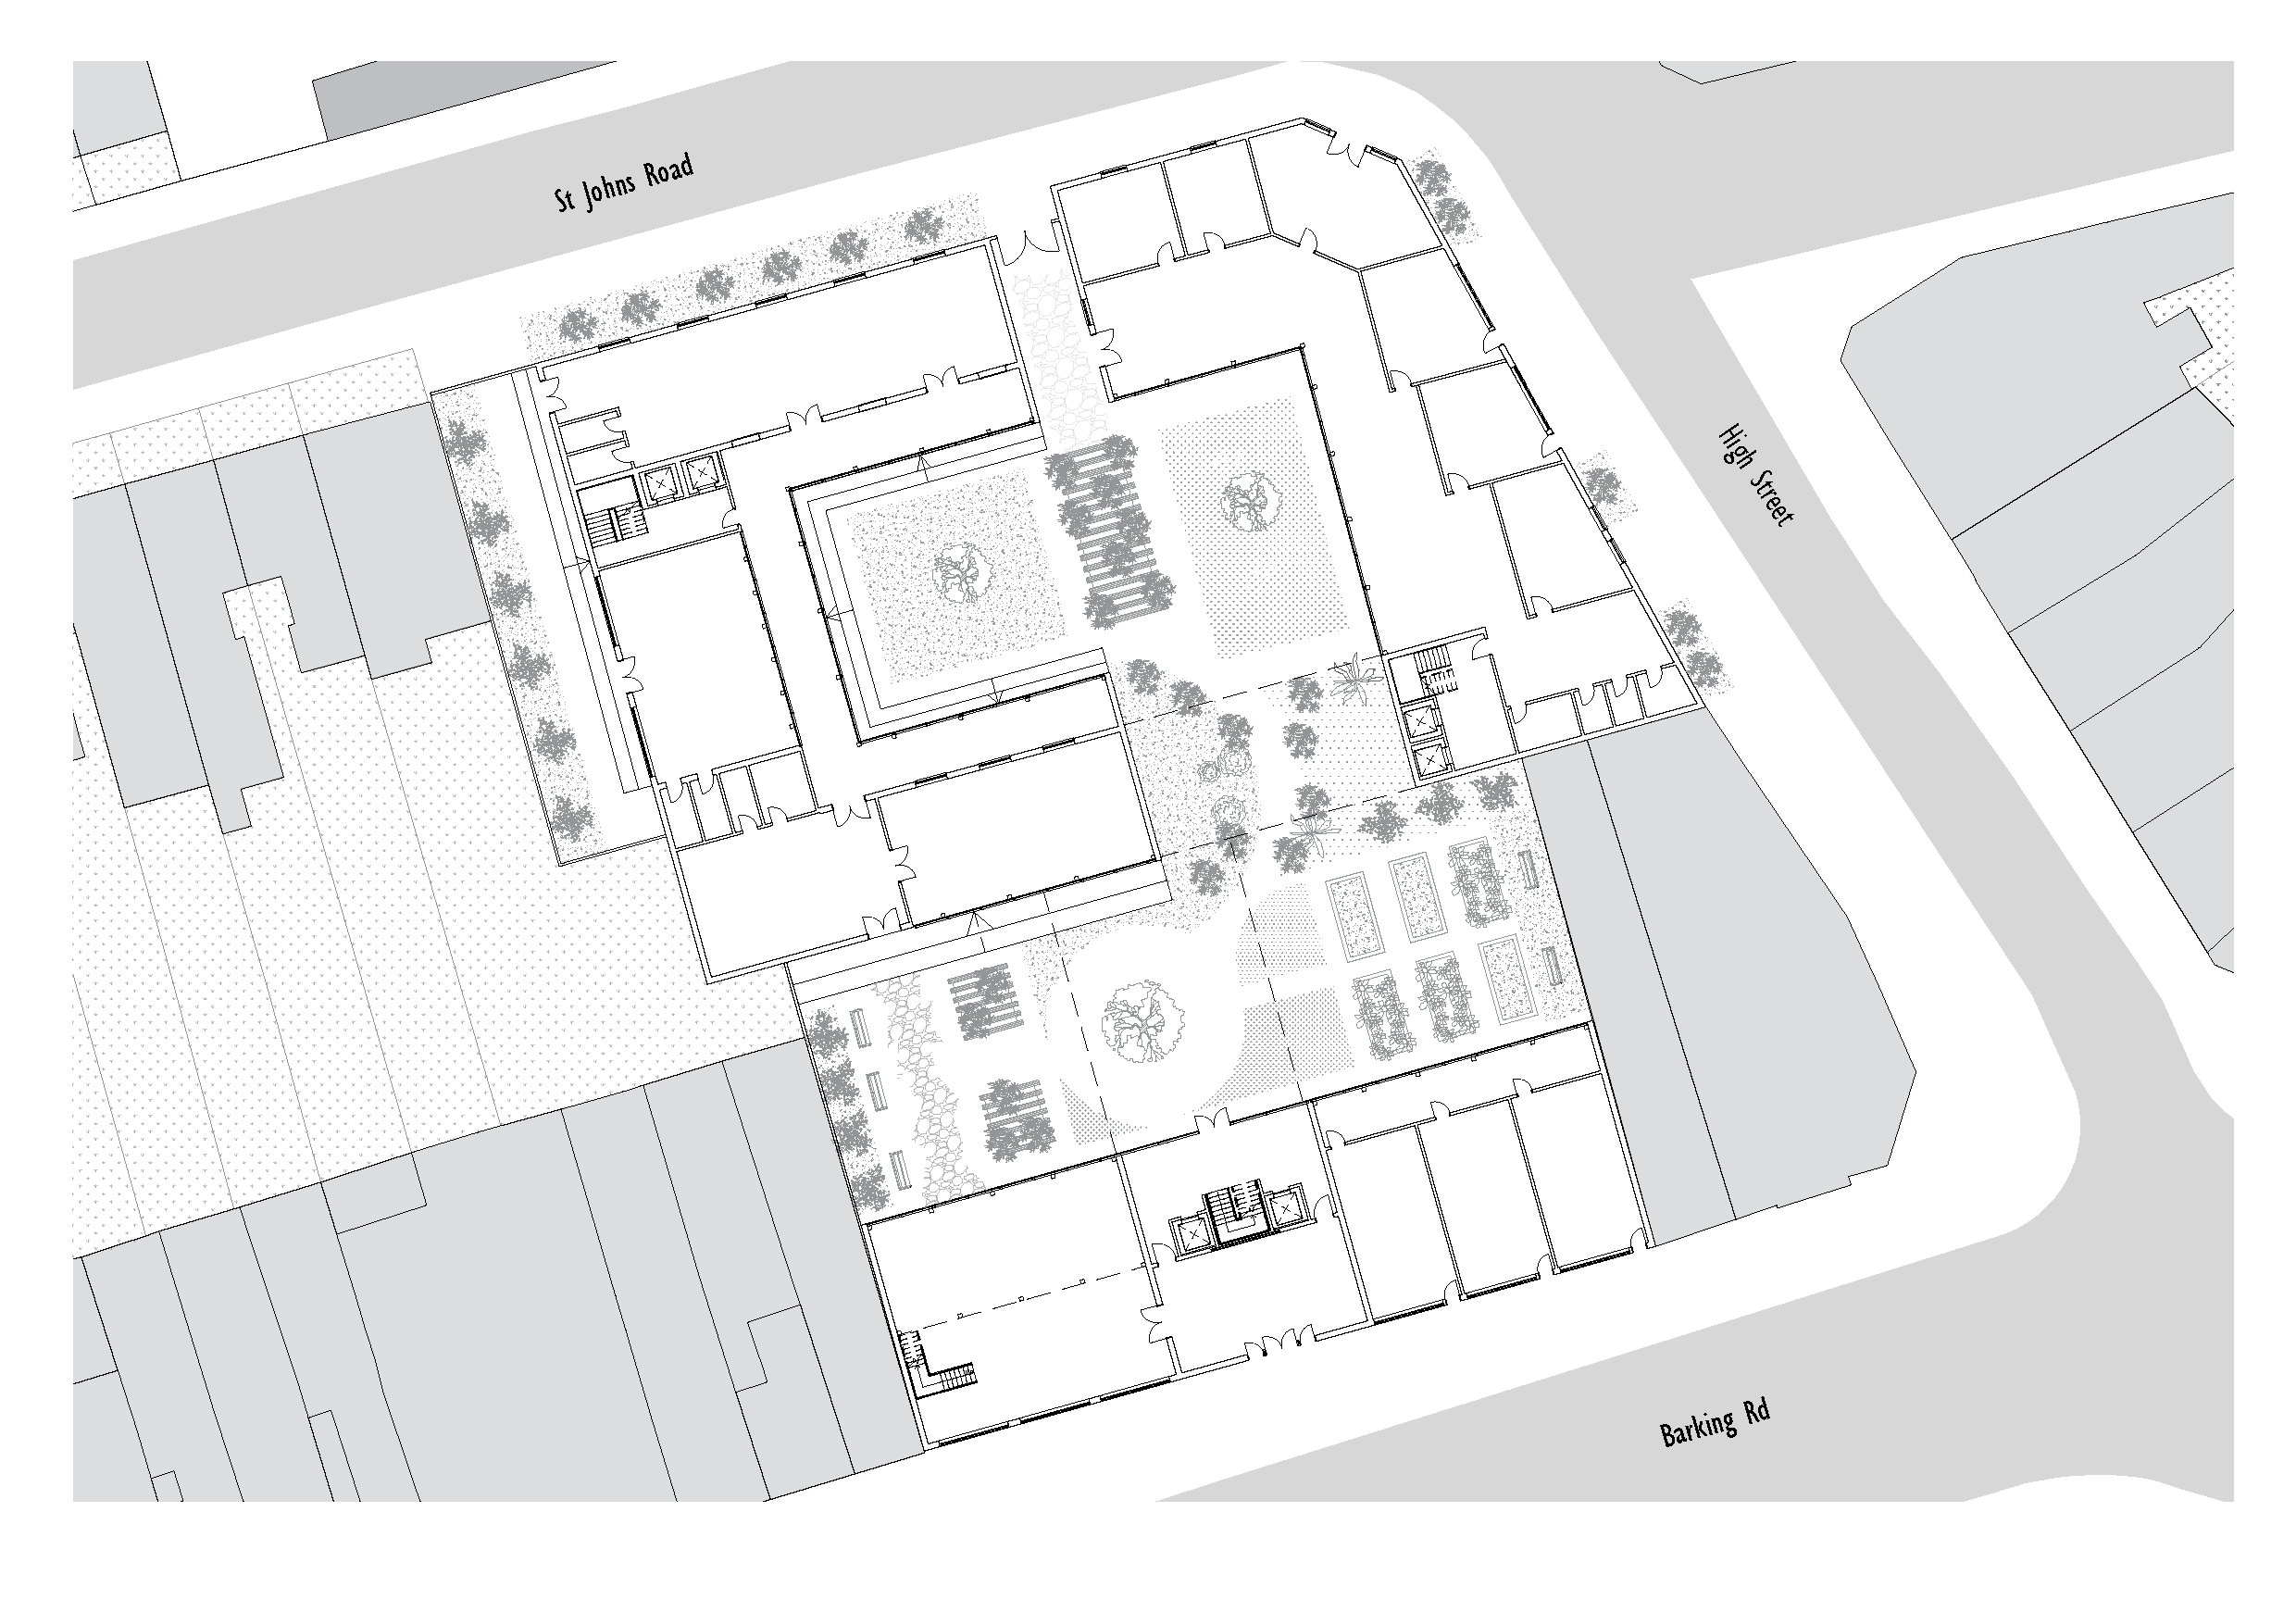 There are a series of intimate courtyards that have different environments allowing for women participating in different activities to take ownership of the space. Uses are clustered around them which allows for visitors and women to always walkthrough or past a garden. Public facilities line the streets edges creating a barrier to more private activities and interaction within the heart of the shelter.